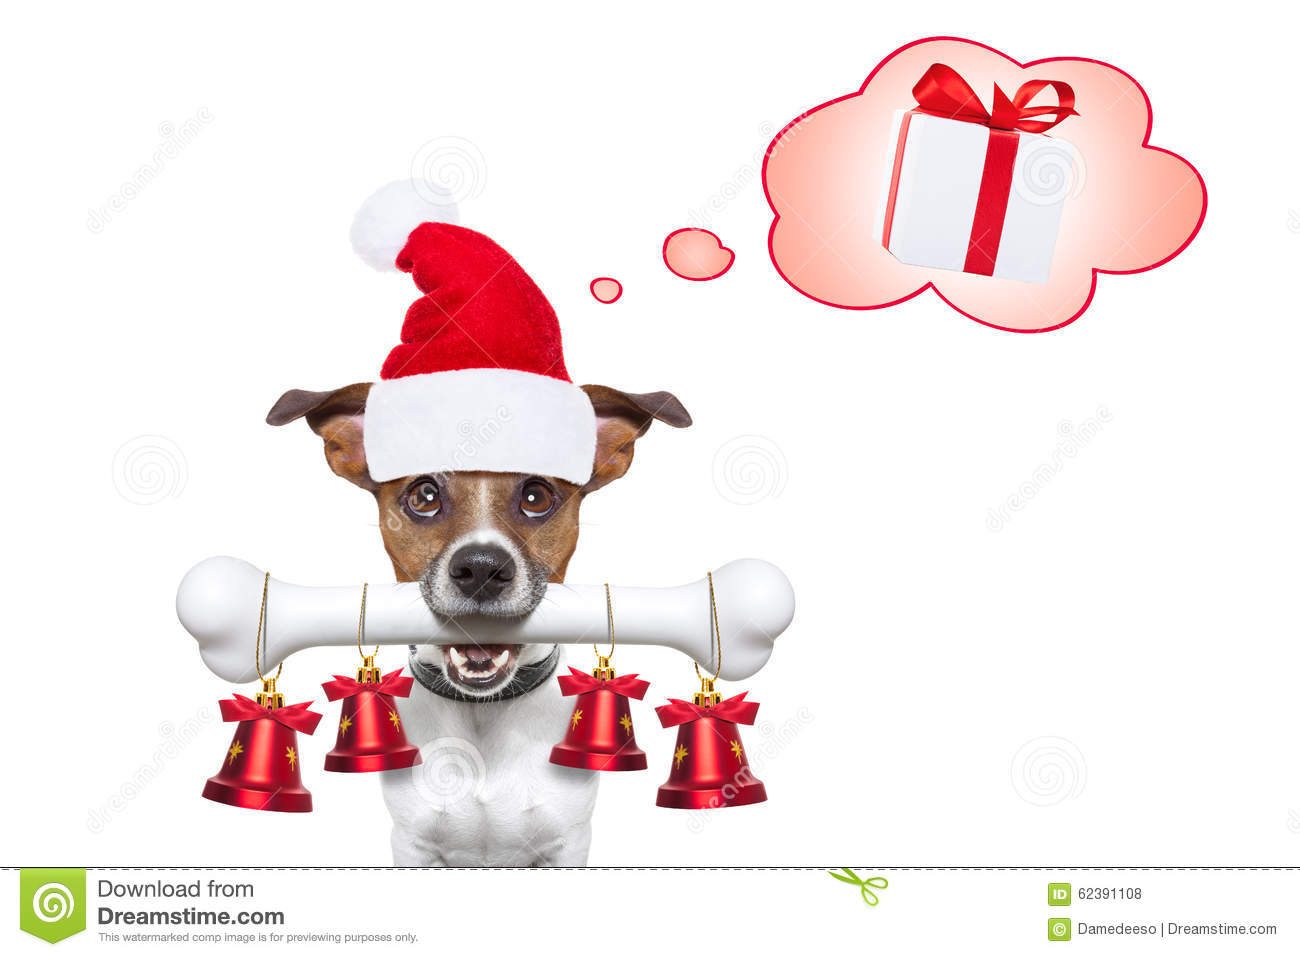 Happy new year dog stock photo. Image of puppy, funny - 62391108